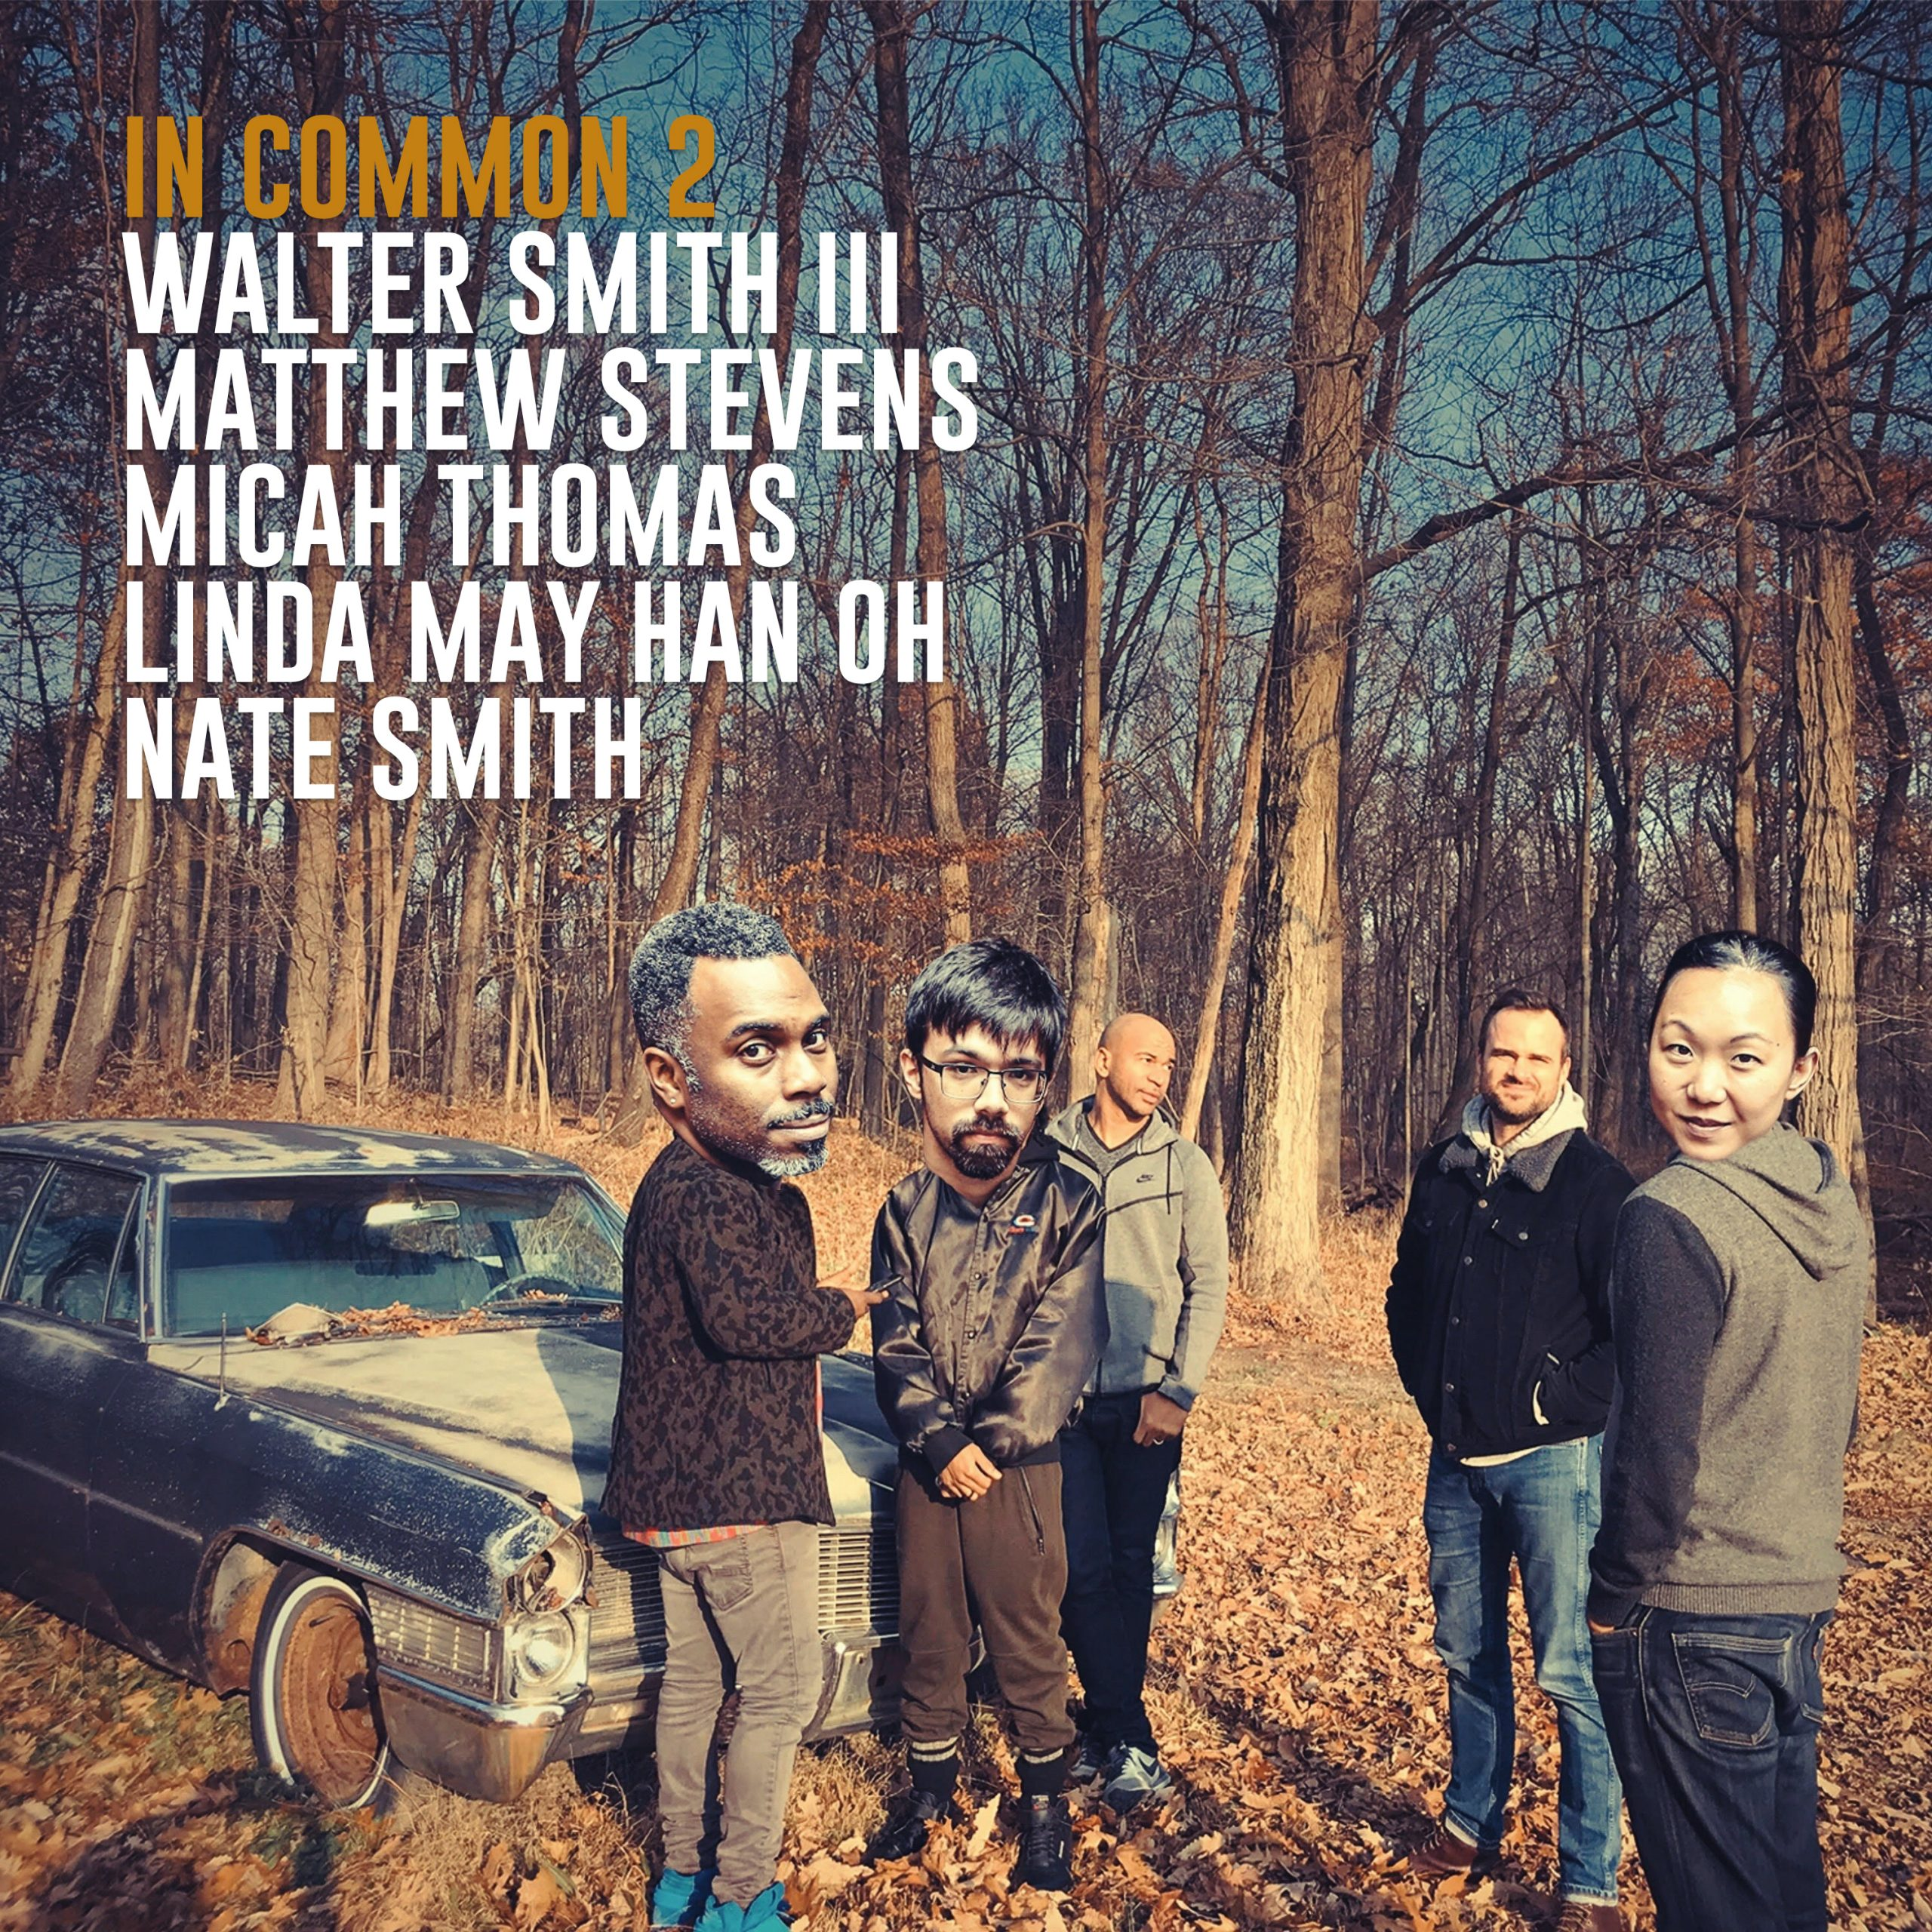 NEW RELEASE: Walter Smith III & Matthew Stevens' IN COMMON 2 out May 15th on Whirlwind Recorings